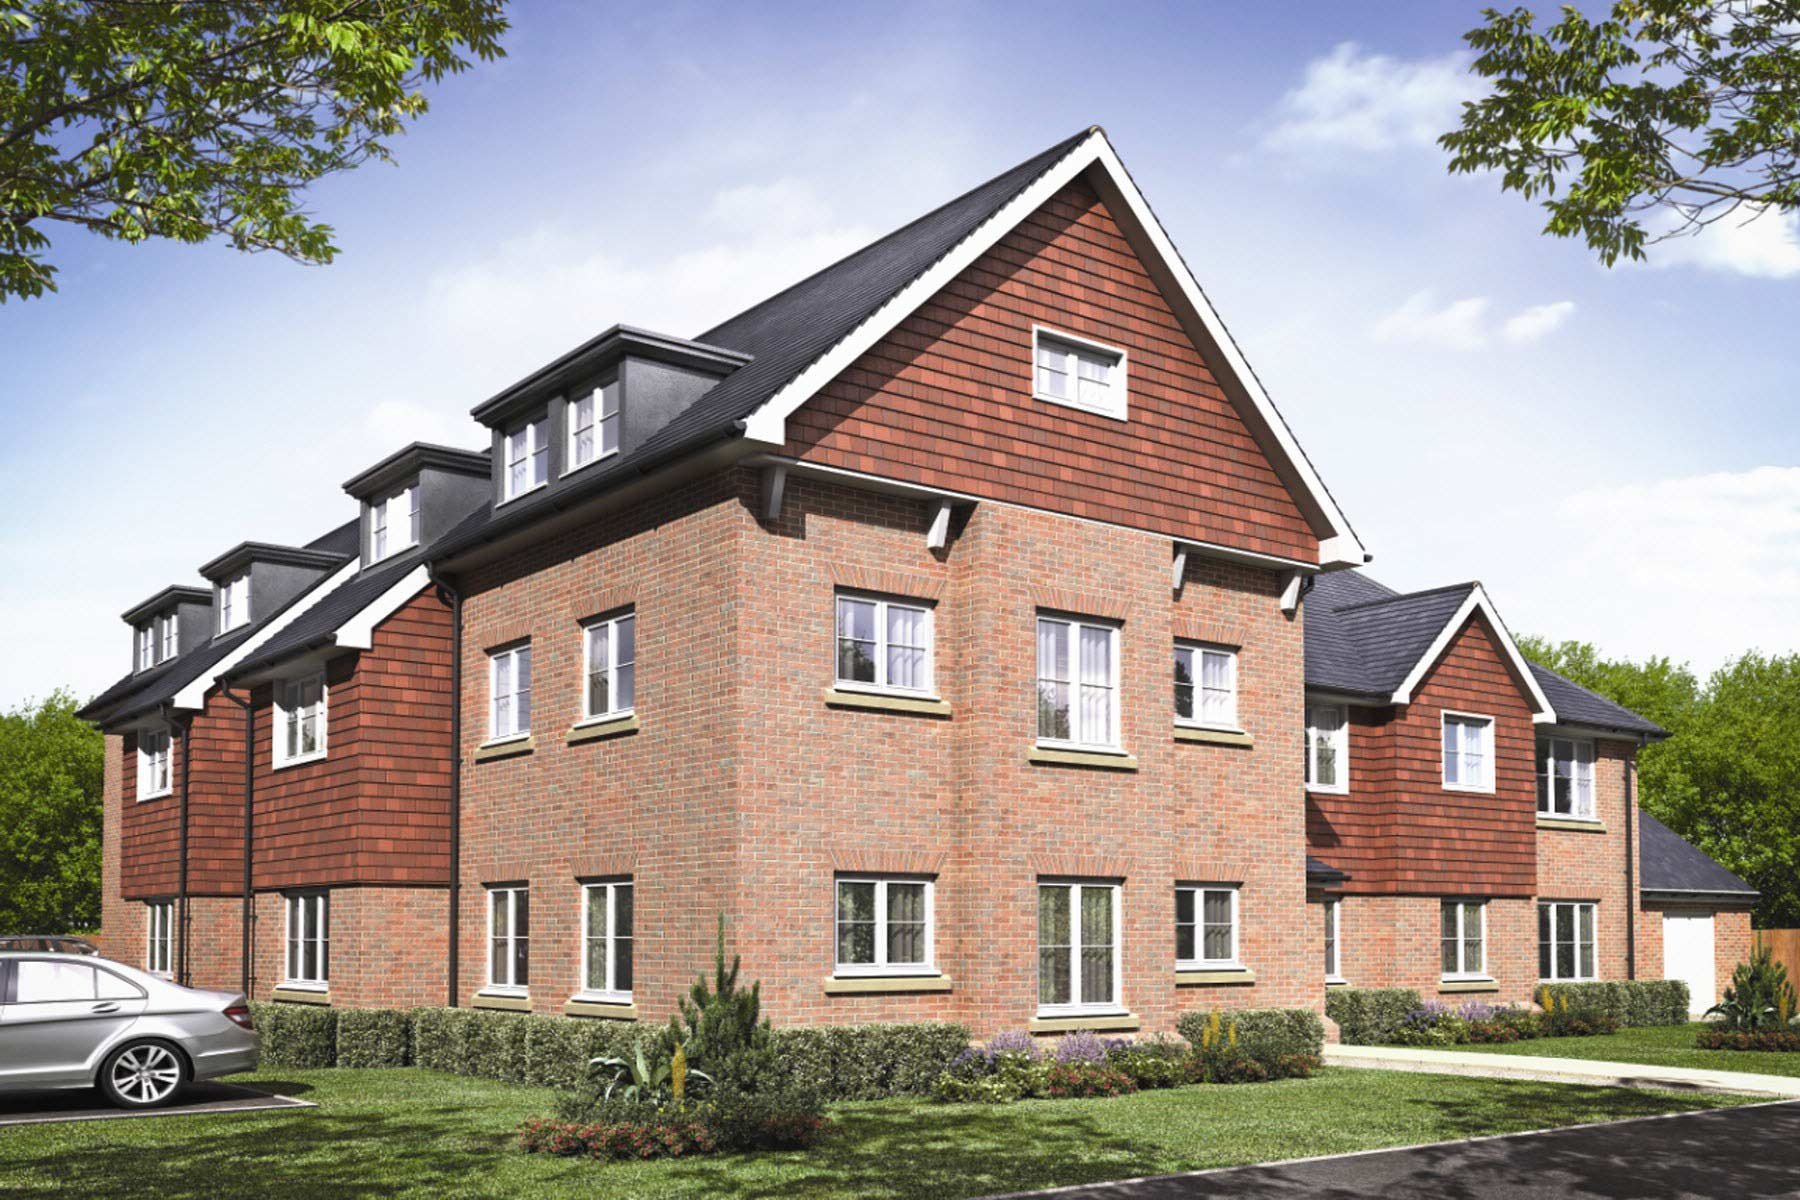 CGI of Cypress Court - 1 & 2 bedroom apartments at Avery Heights, New Eltham